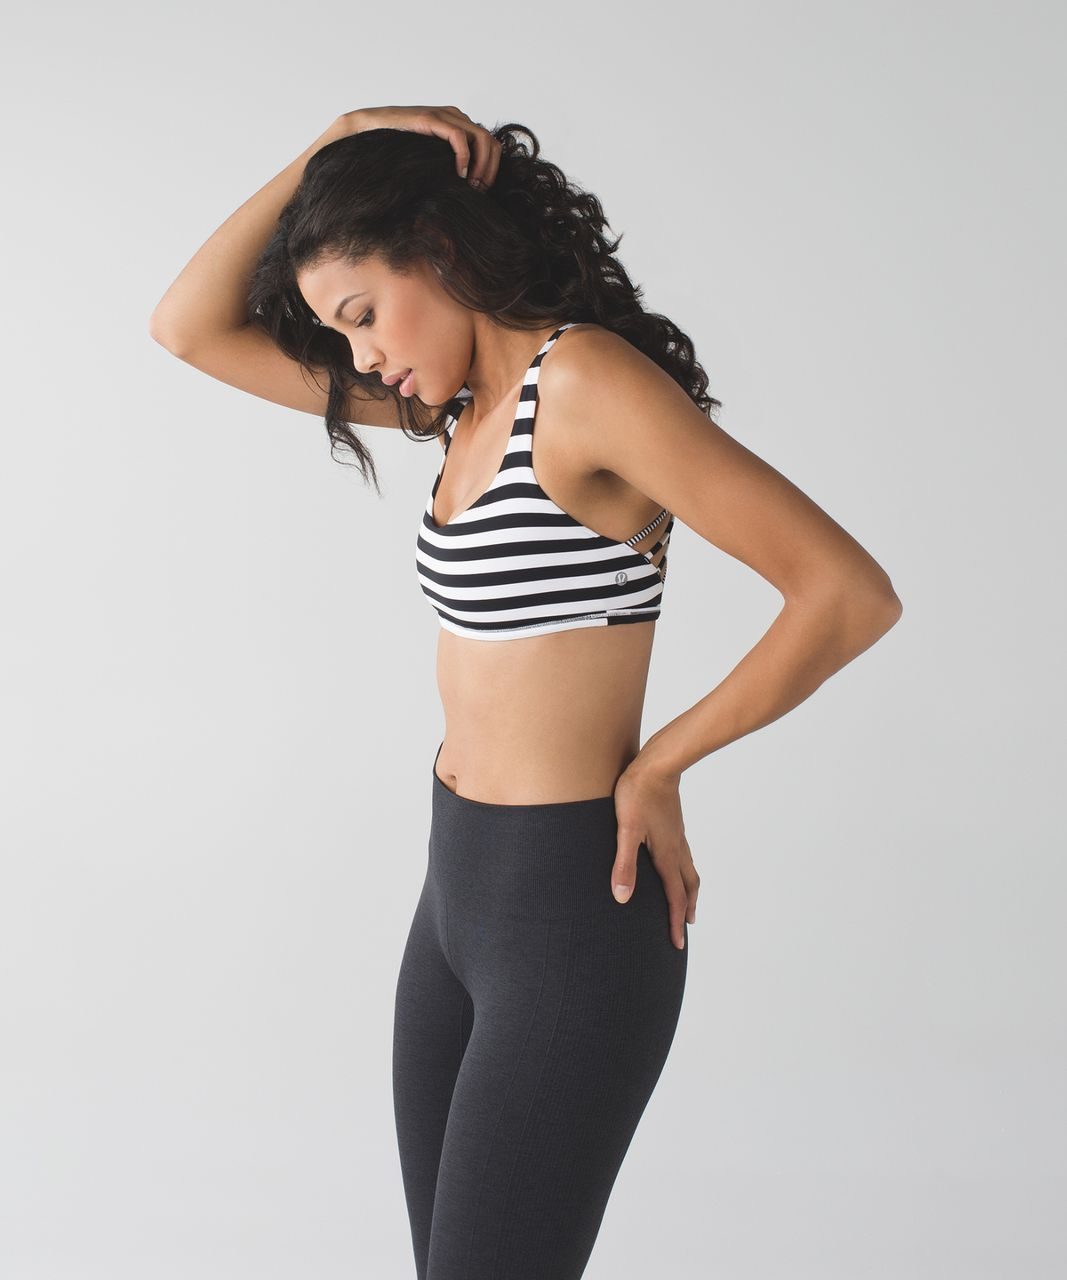 Lululemon Free To Be Bra (Wild) - Apex Stripe Black White / Tonka Stripe Black White